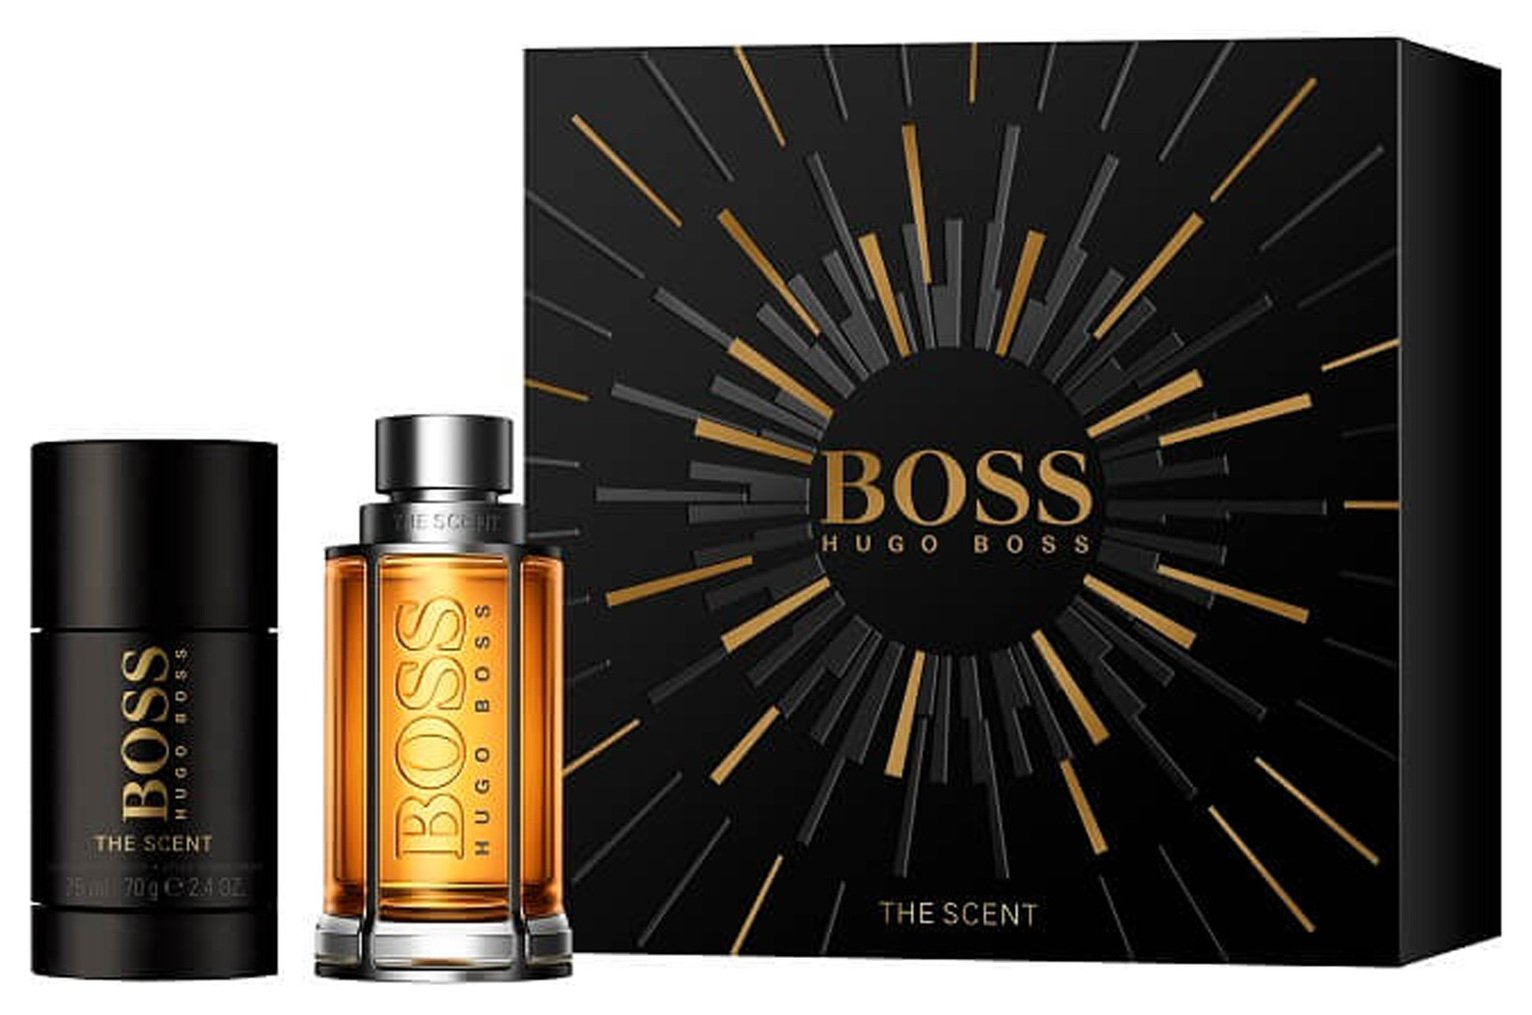 Hugo Boss Men's The Scent 50ml Giftset